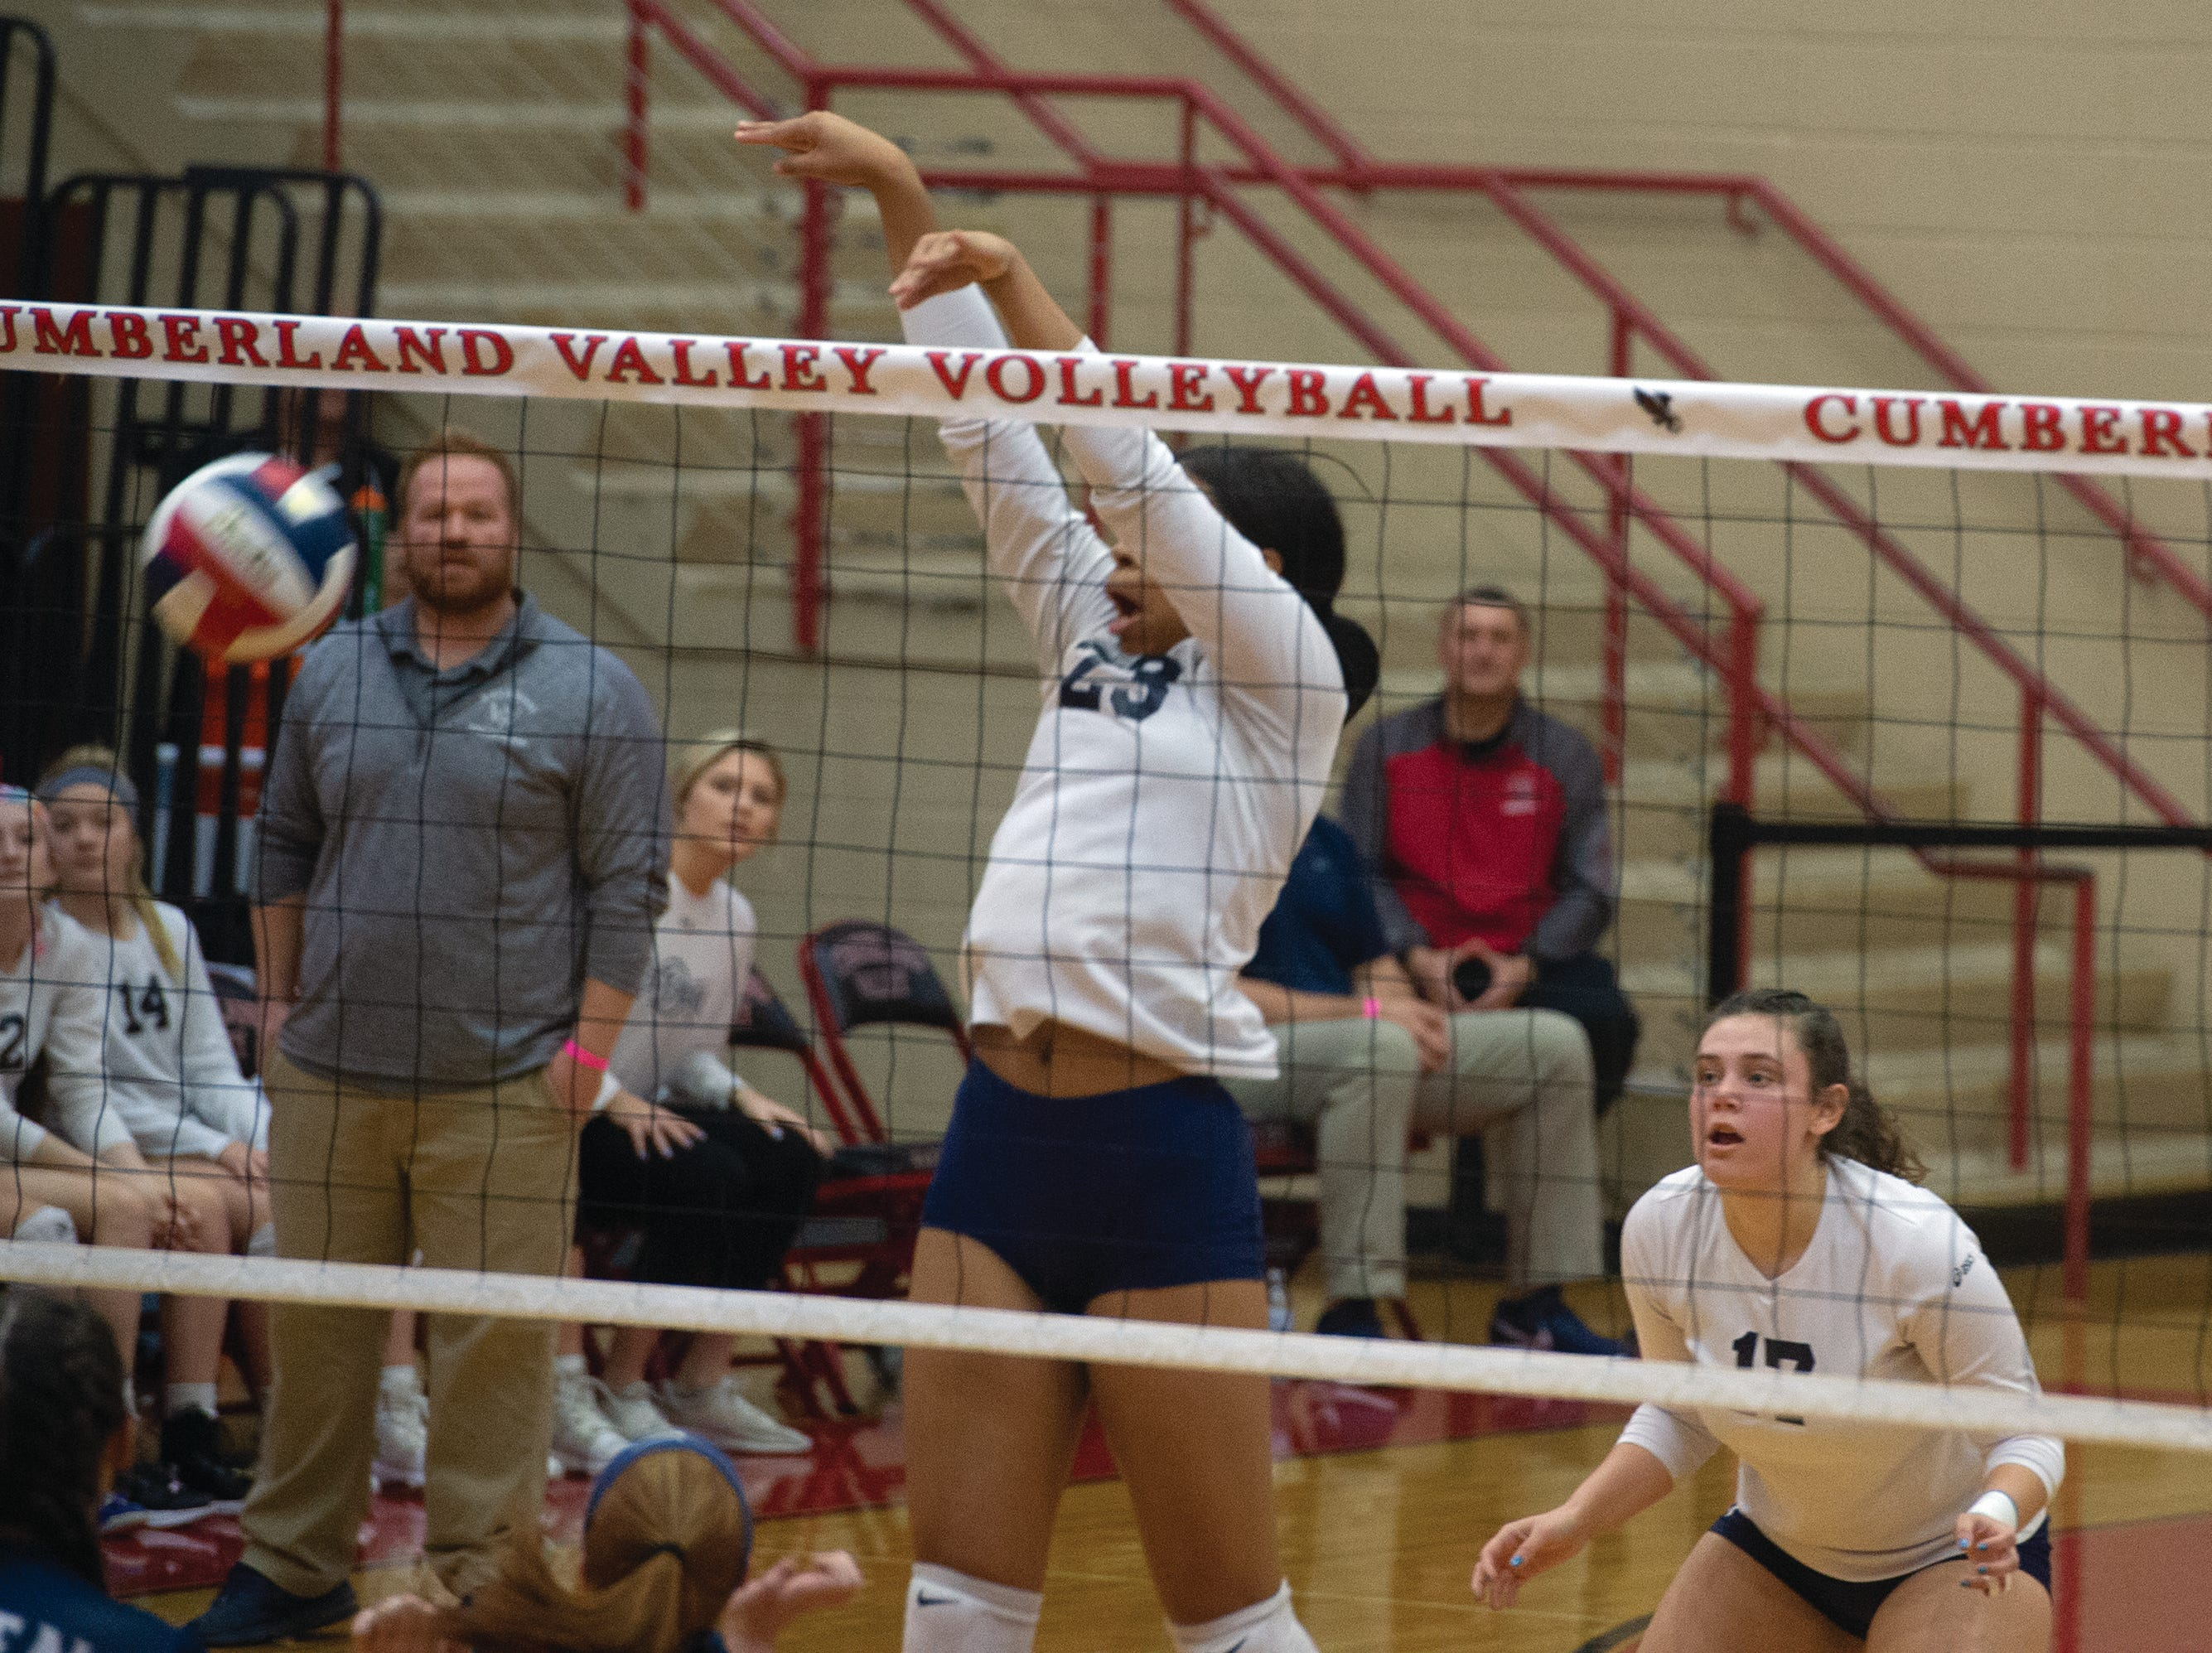 West York's Alayna Harris collects a solo block on a Warren overset in the first game of the Bulldogs' 3-0 win in the PIAA Class 3A girls' volleyball championship. The match was played Saturday, Nov. 17, 2018 at Cumberland Valley High School.